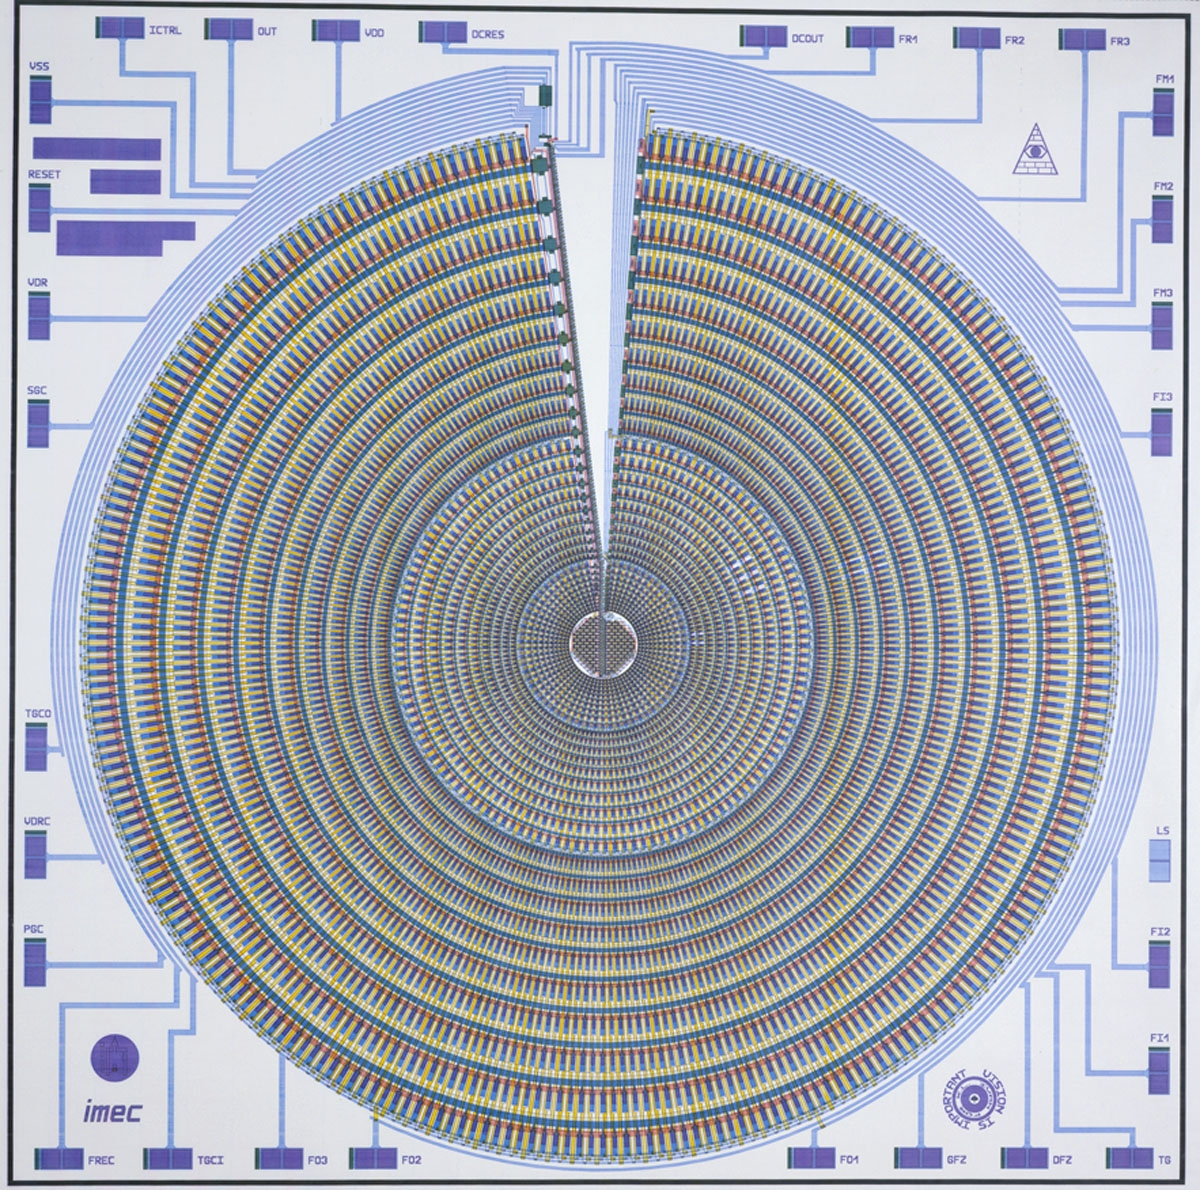 IMEC and University of Pennsylvania. Diagram of a Neural Net: foveated, retina-like sensor. 1989. Manufacturer:  IMEC and University of Pennsylvania. Gift of University of Pennsylvania